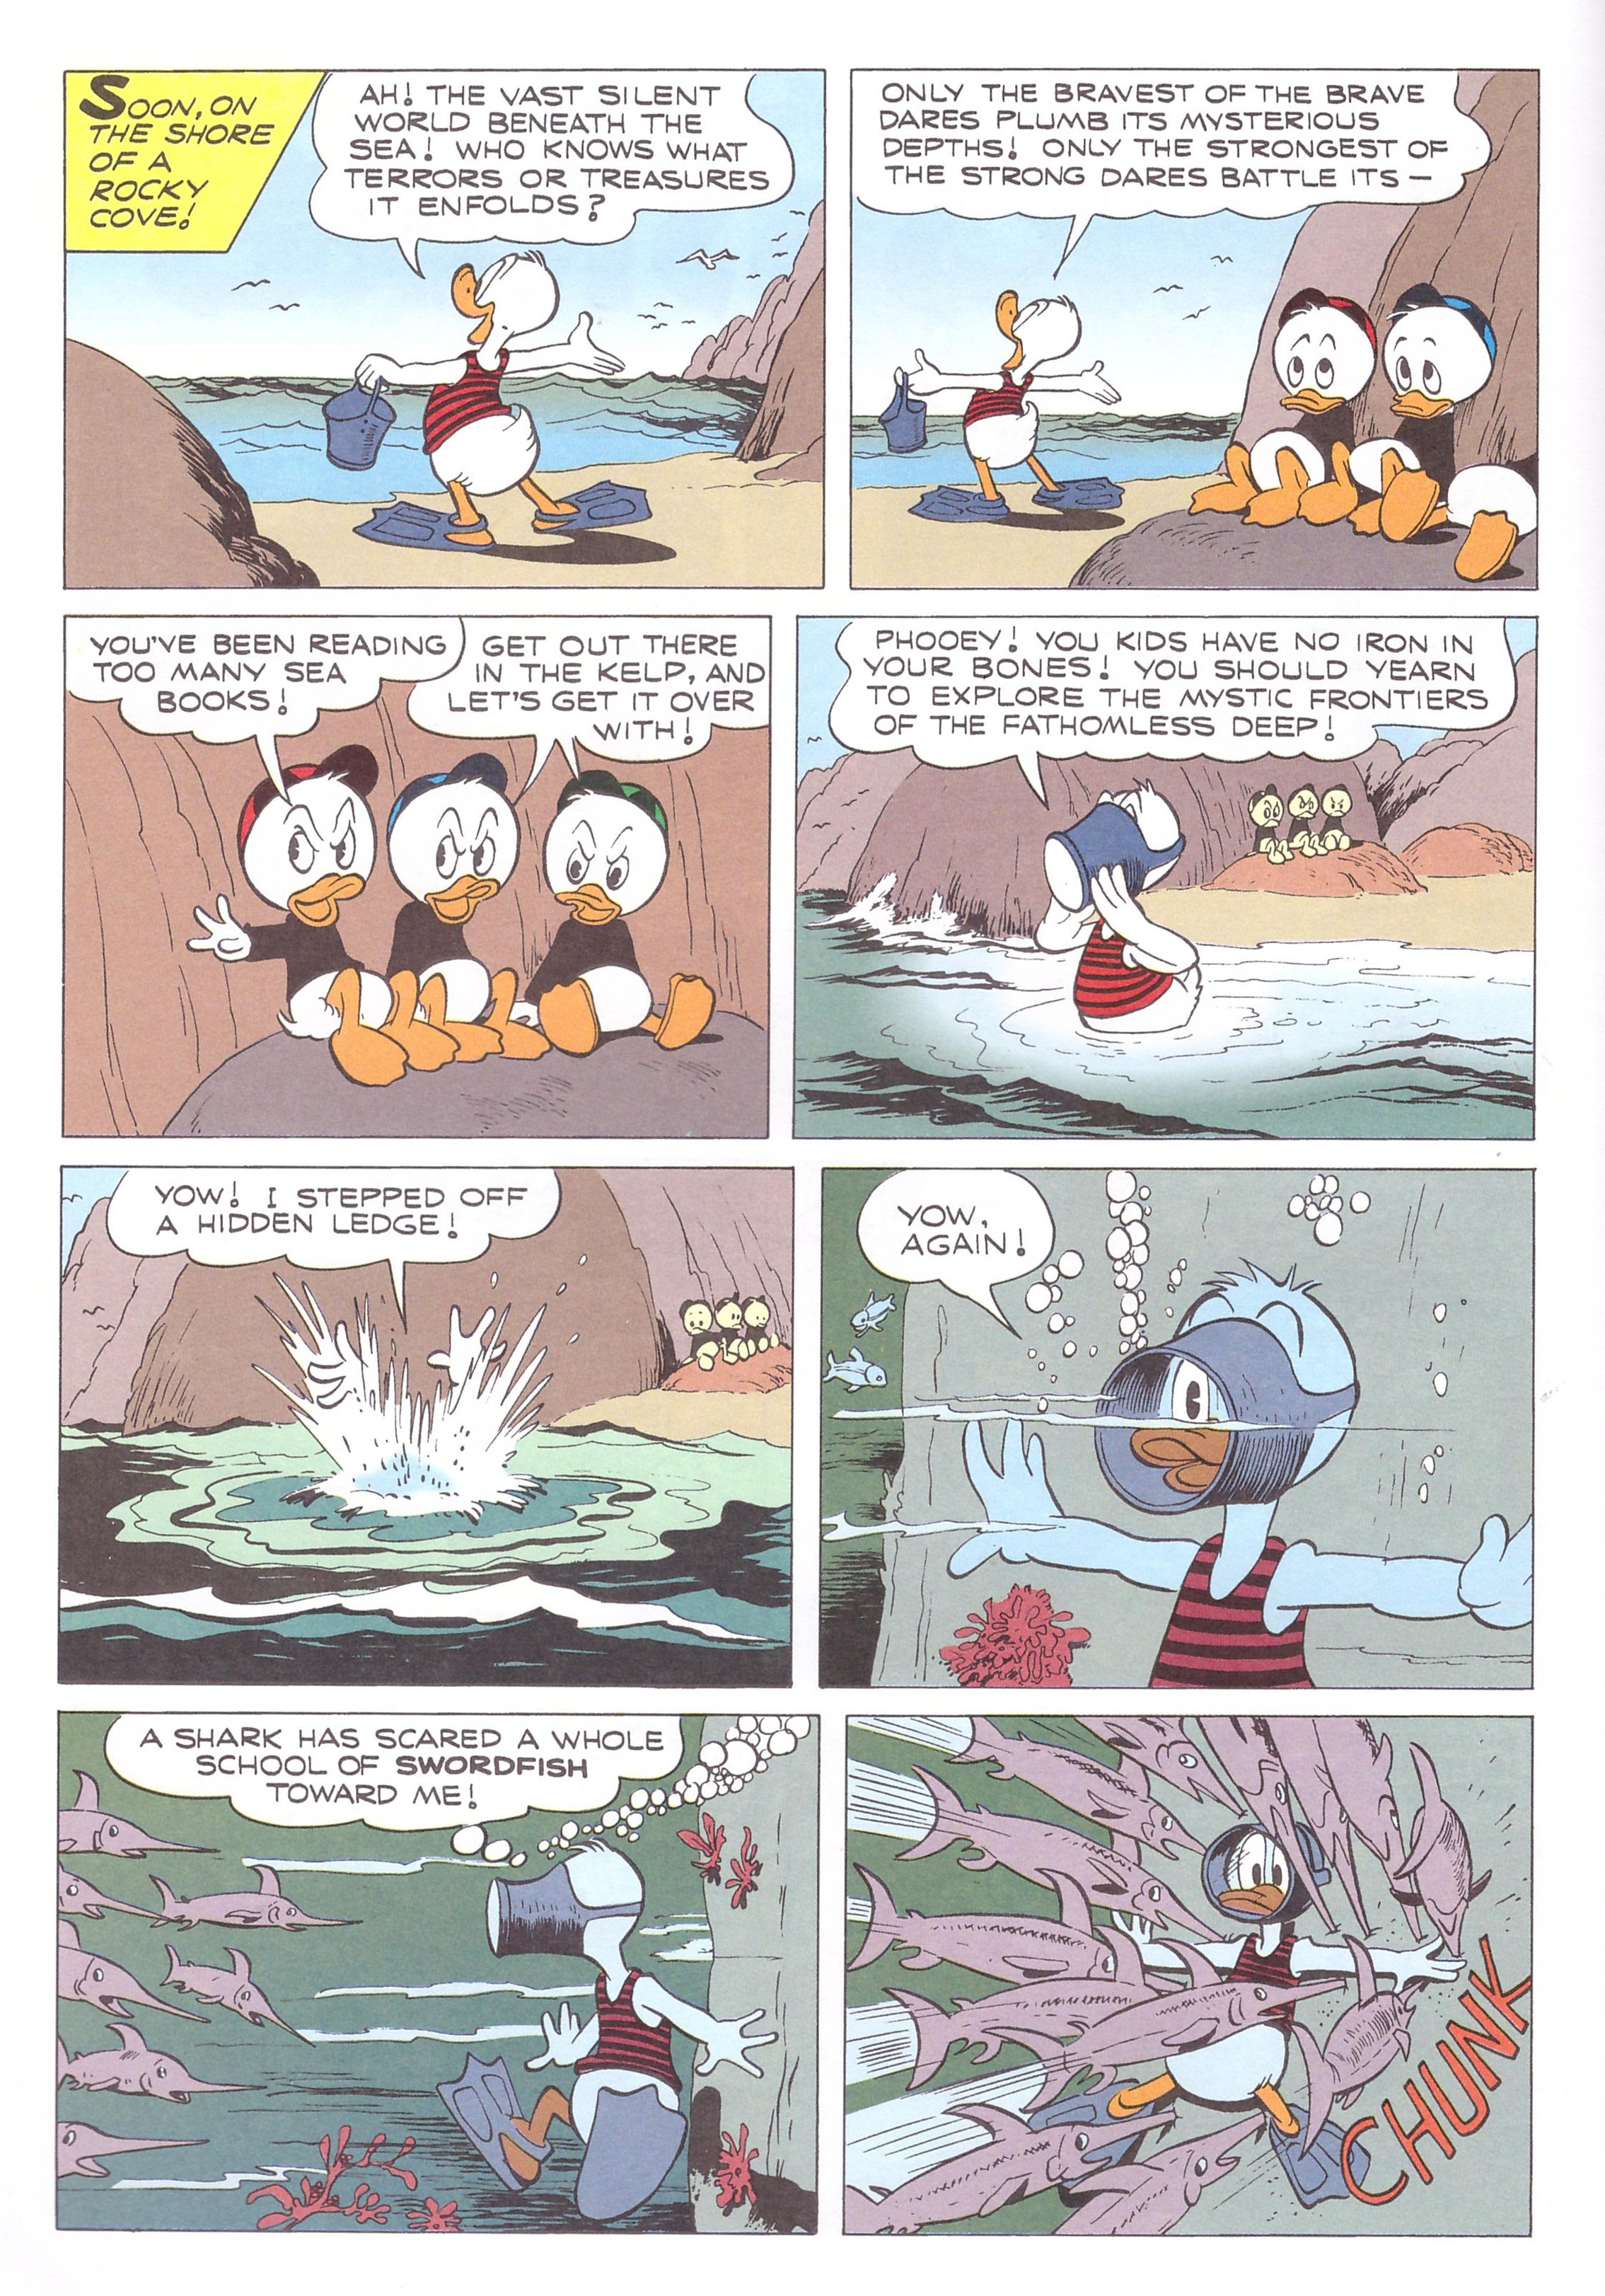 Walt Disney Comics and Stories by Carl Barks review